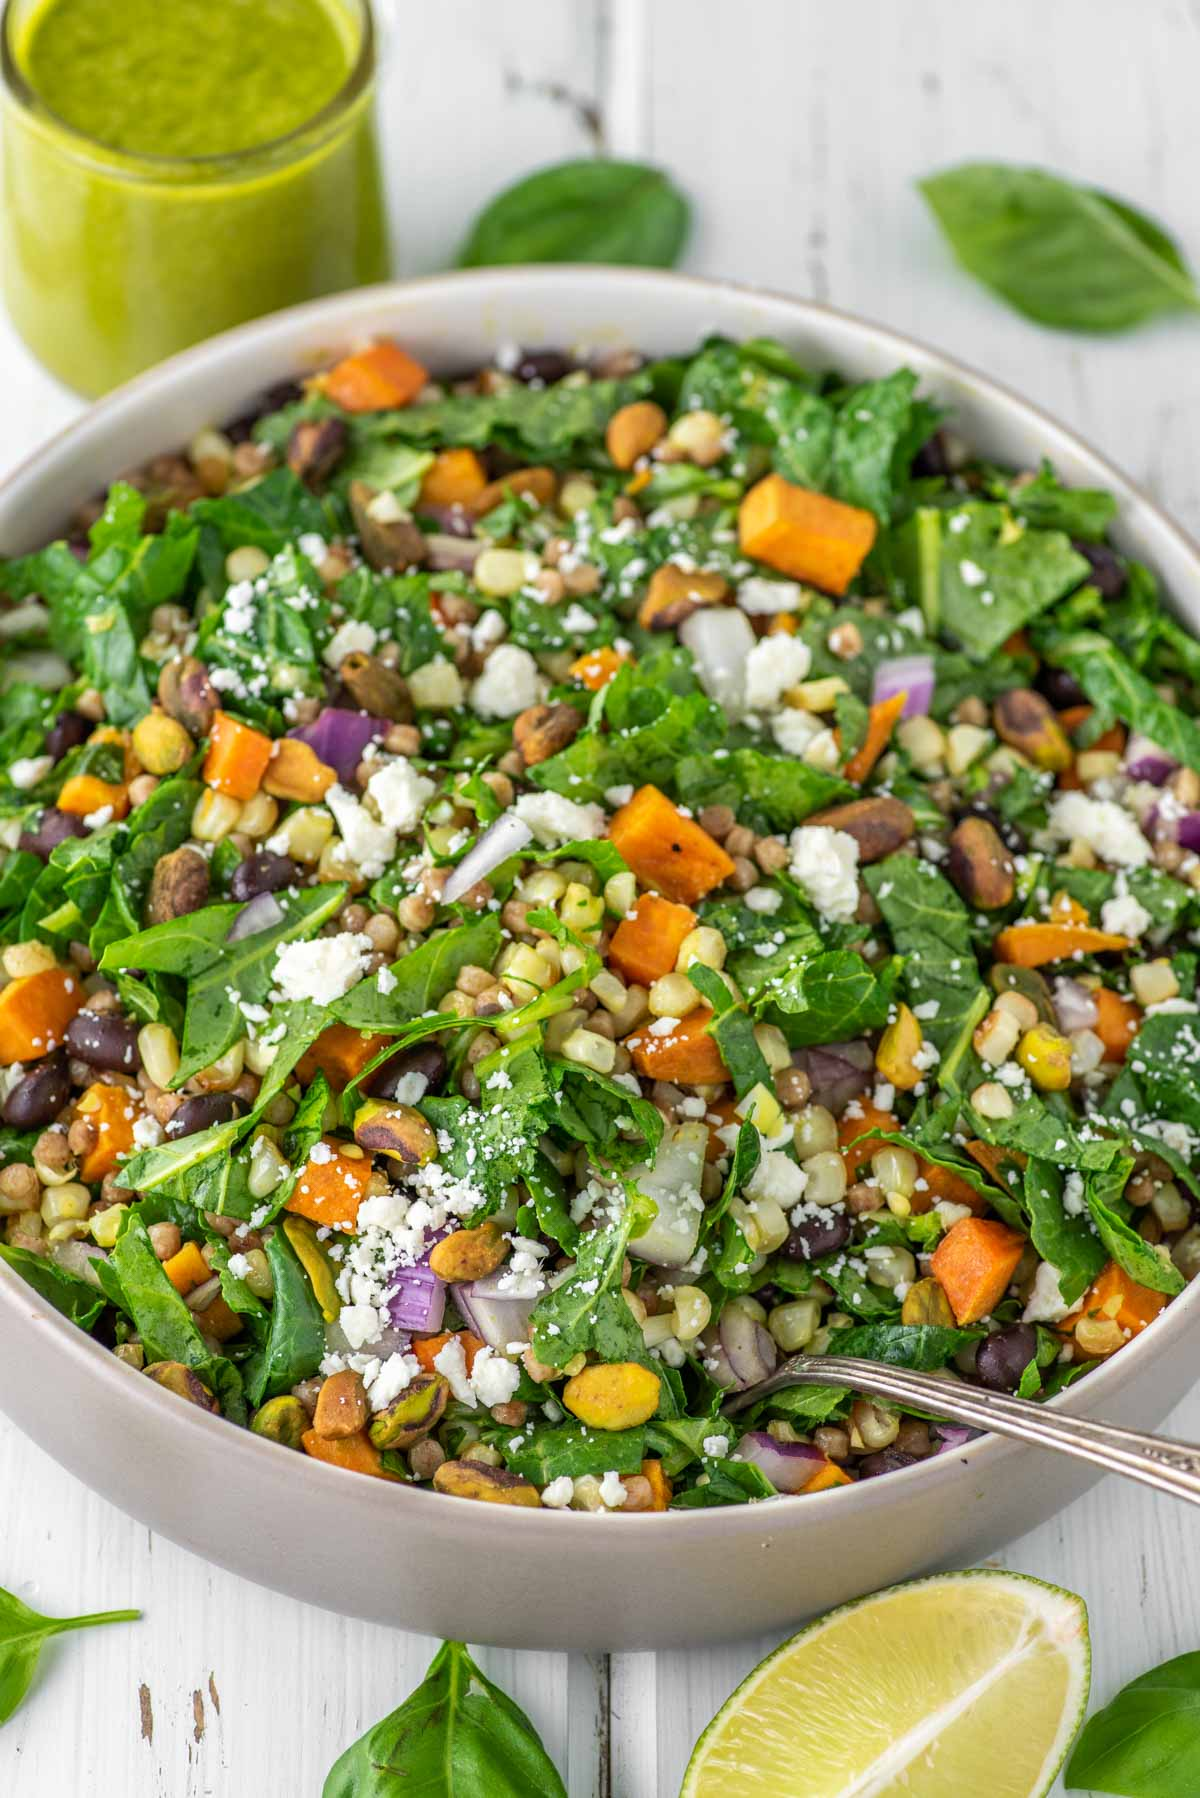 basil lime couscous salad in bowl